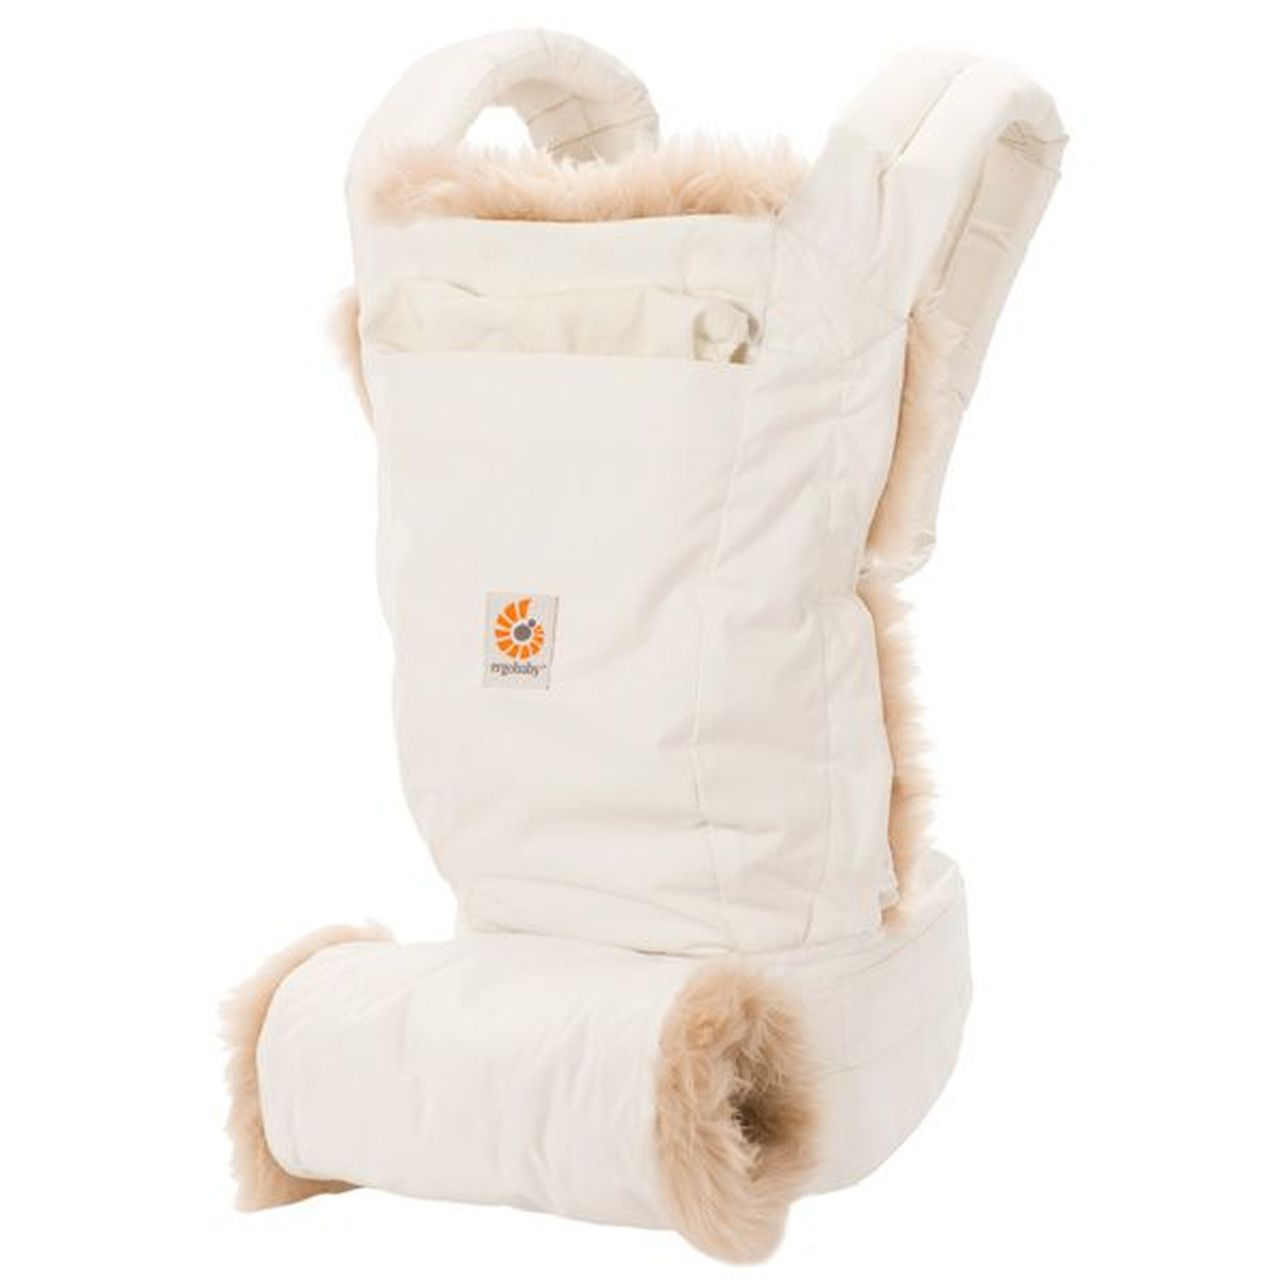 ERGO Baby Carrier & Hand Muff - Winter Edition